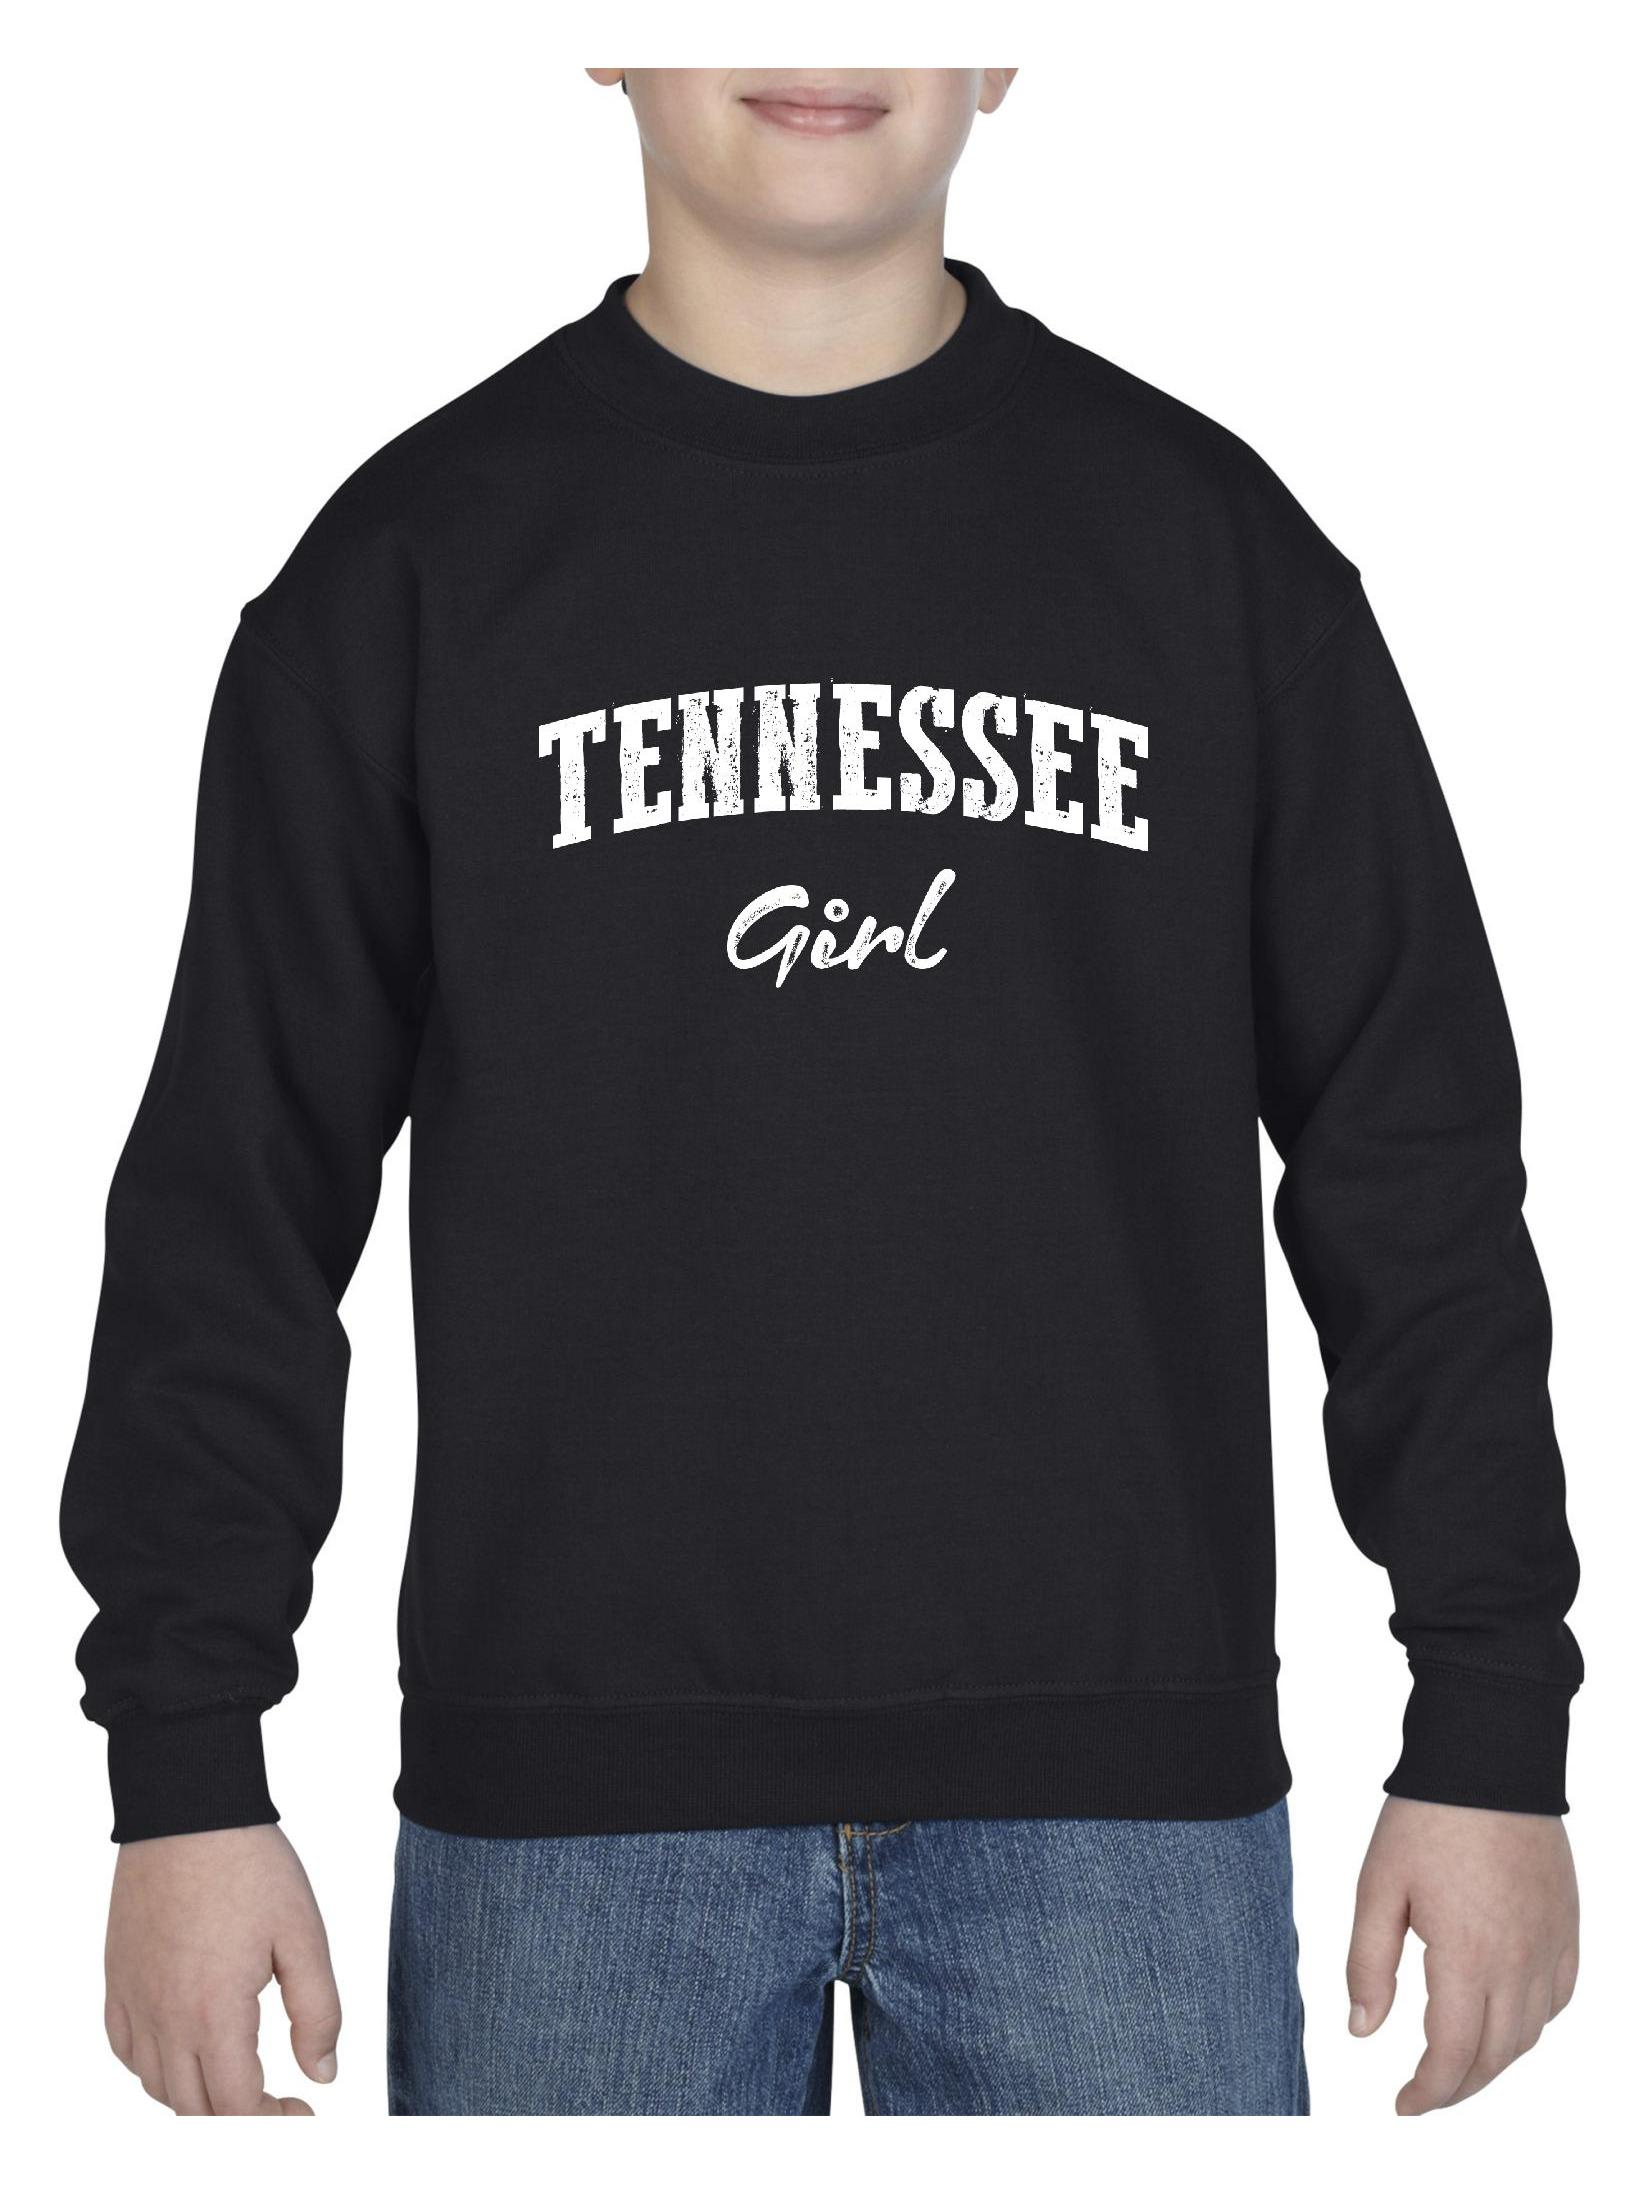 Tennessee Girl Unisex Youth Crewneck Sweatshirt